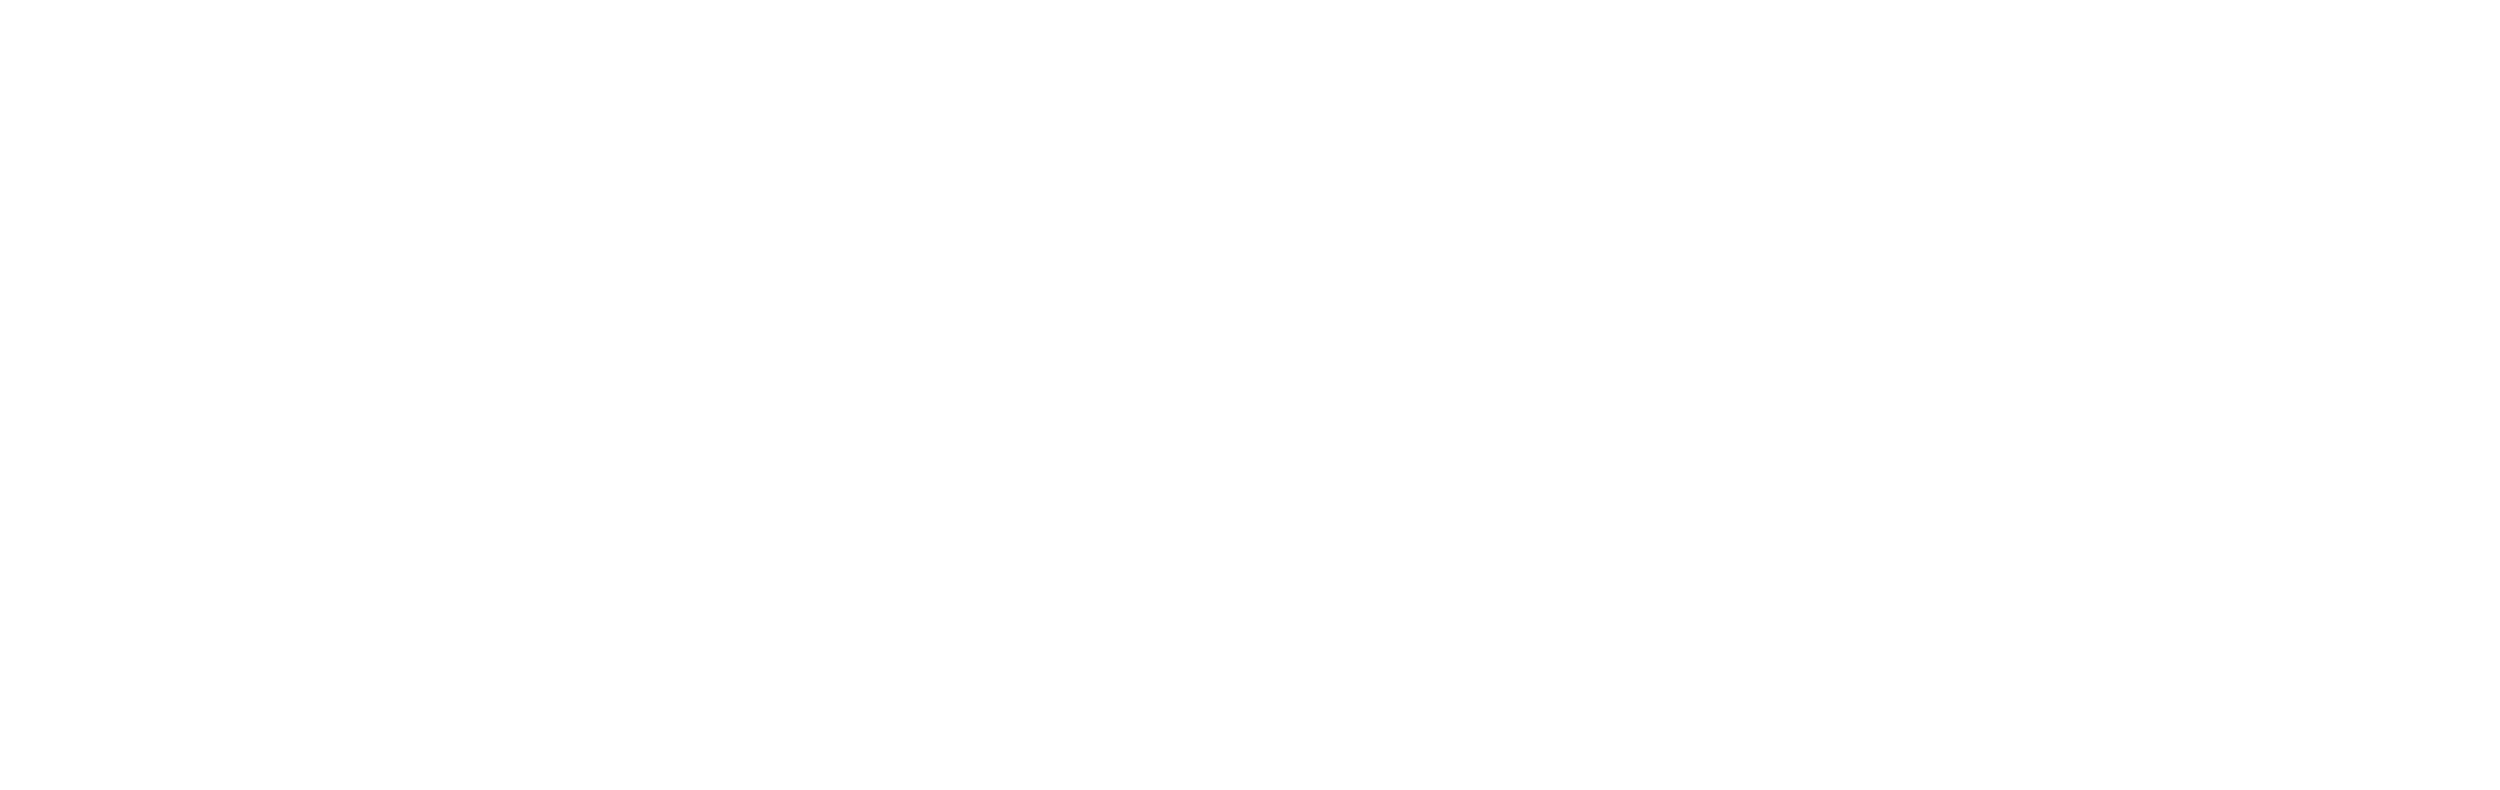 GBEA-04.png